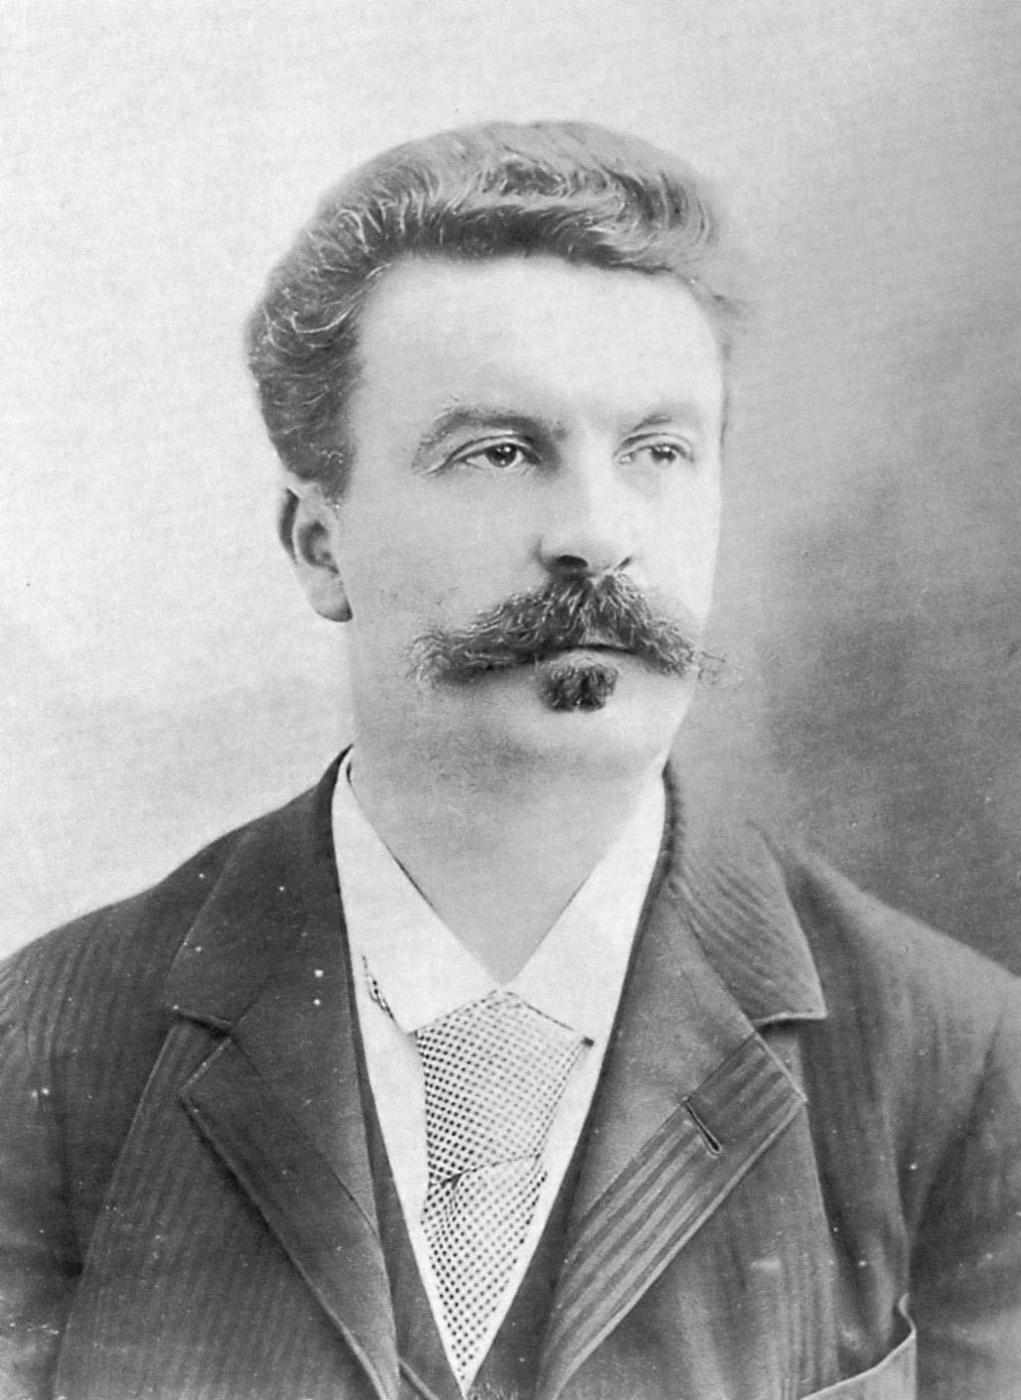 Photograph of Guy de Maupassant